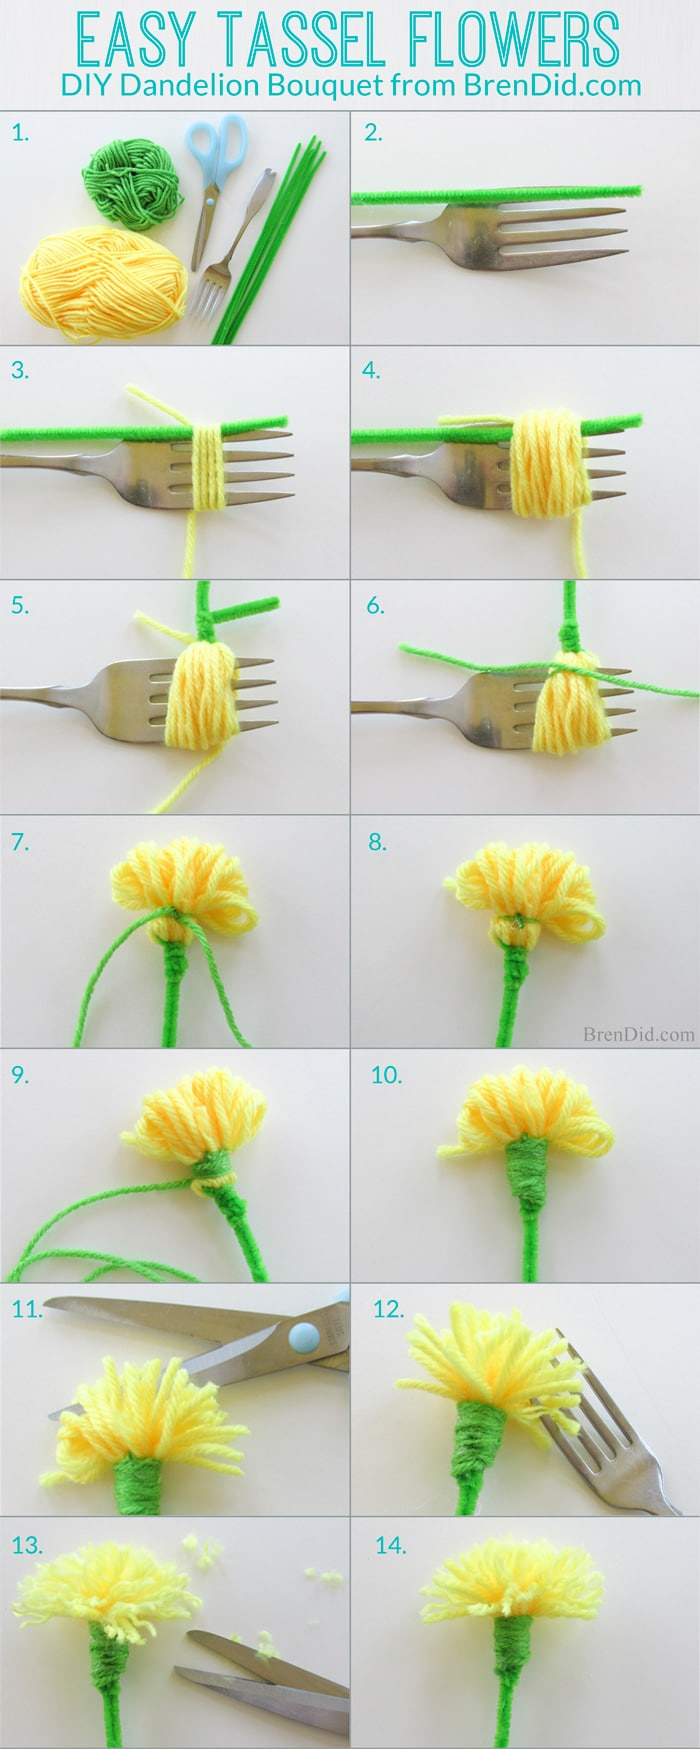 Easy Tassel Flowers DIY Dandelion Bouquet  Bren Did